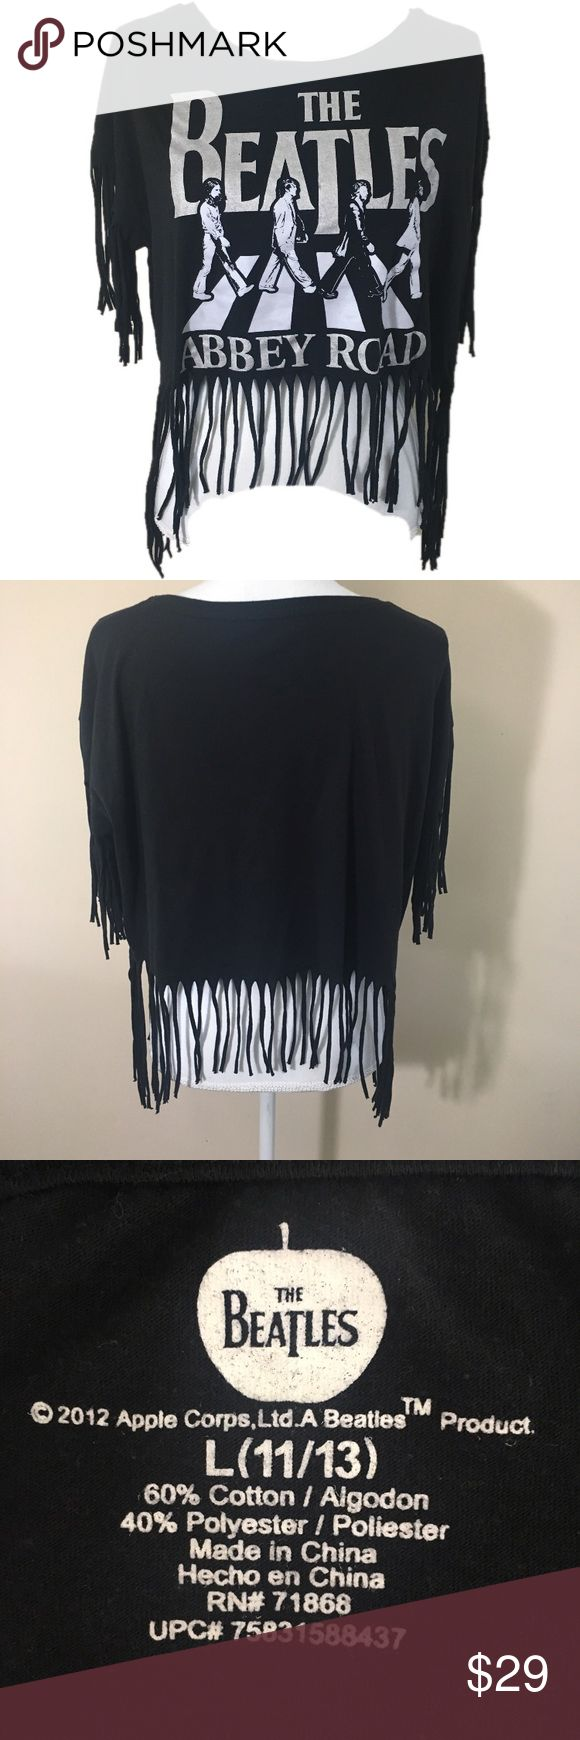 "The Beatles Abbey Road Fringe Shirt Sz 11/13 Large The Beatles Abbey Road Fringe Shirt Sz 11/13 Large. Total Chest 49""  Length from Neck to Start of Fringe 14.4"" Apple Corps  Tops Tees - Short Sleeve"